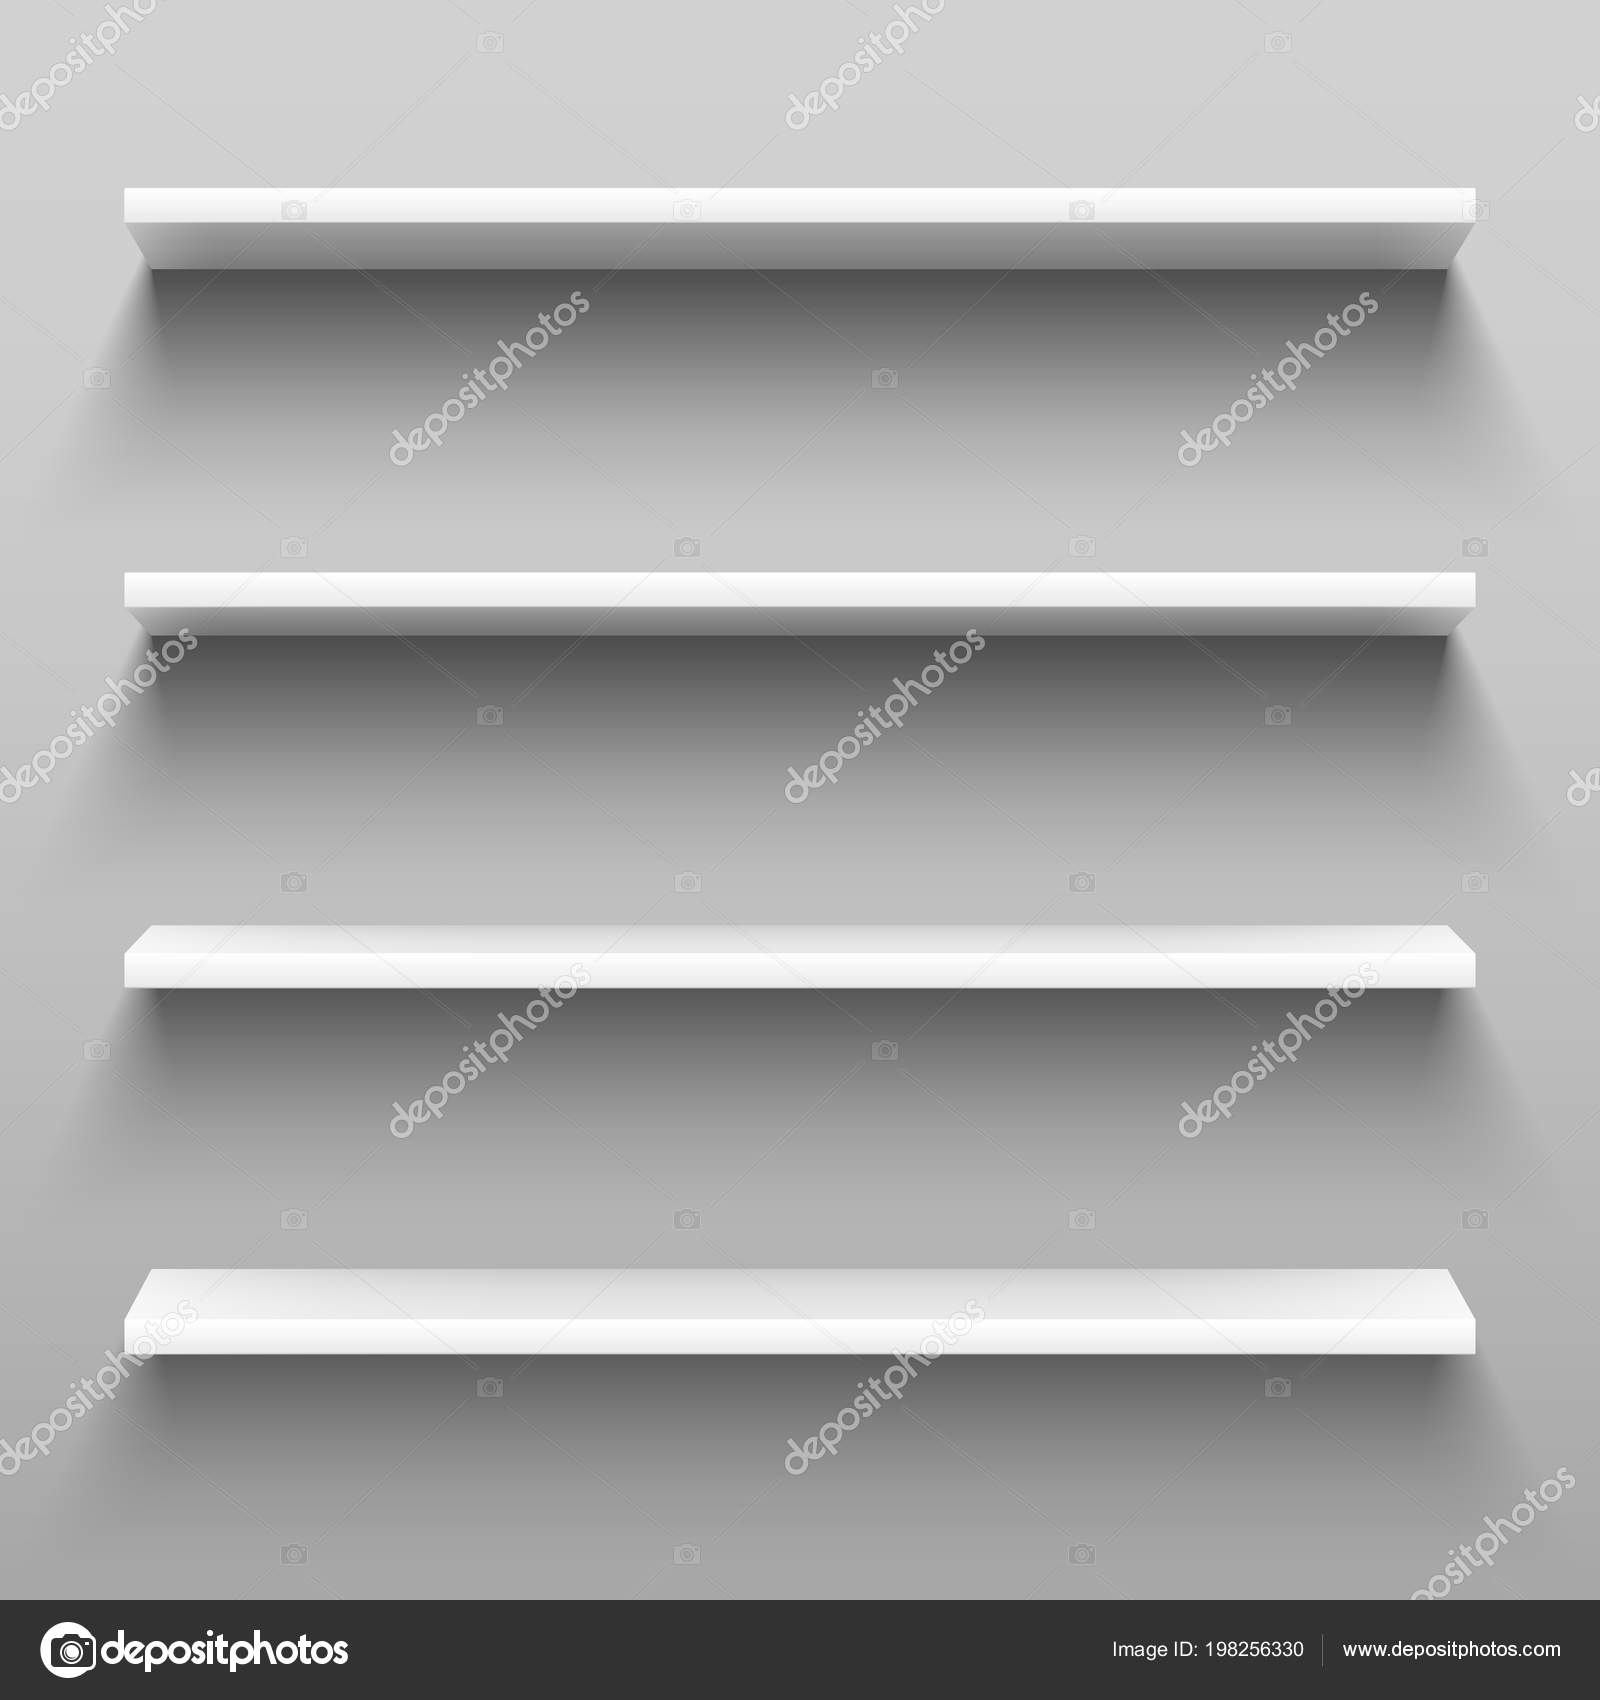 Empty White Shelves For Home Shelving Furniture Realistic Group Of Racks Storage Shelf With